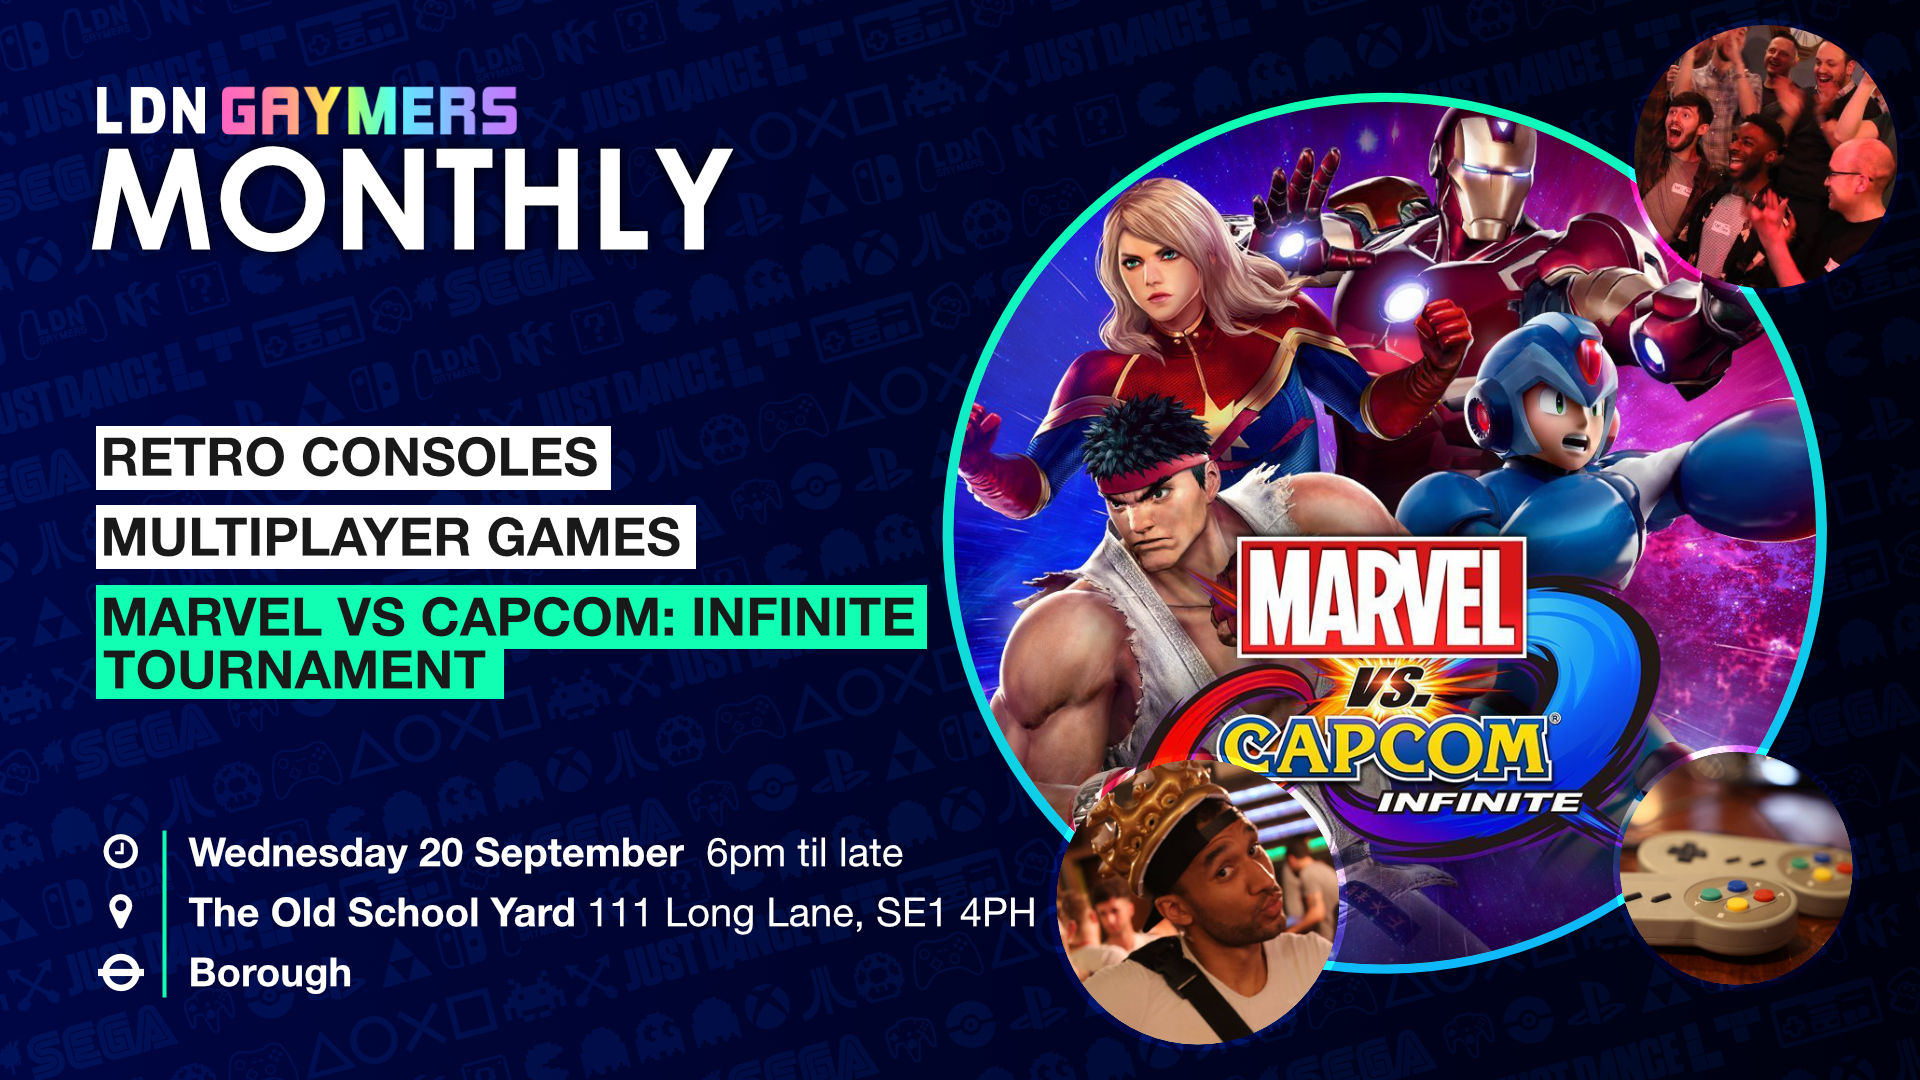 LDN Gaymers Monthly: The Infinite One